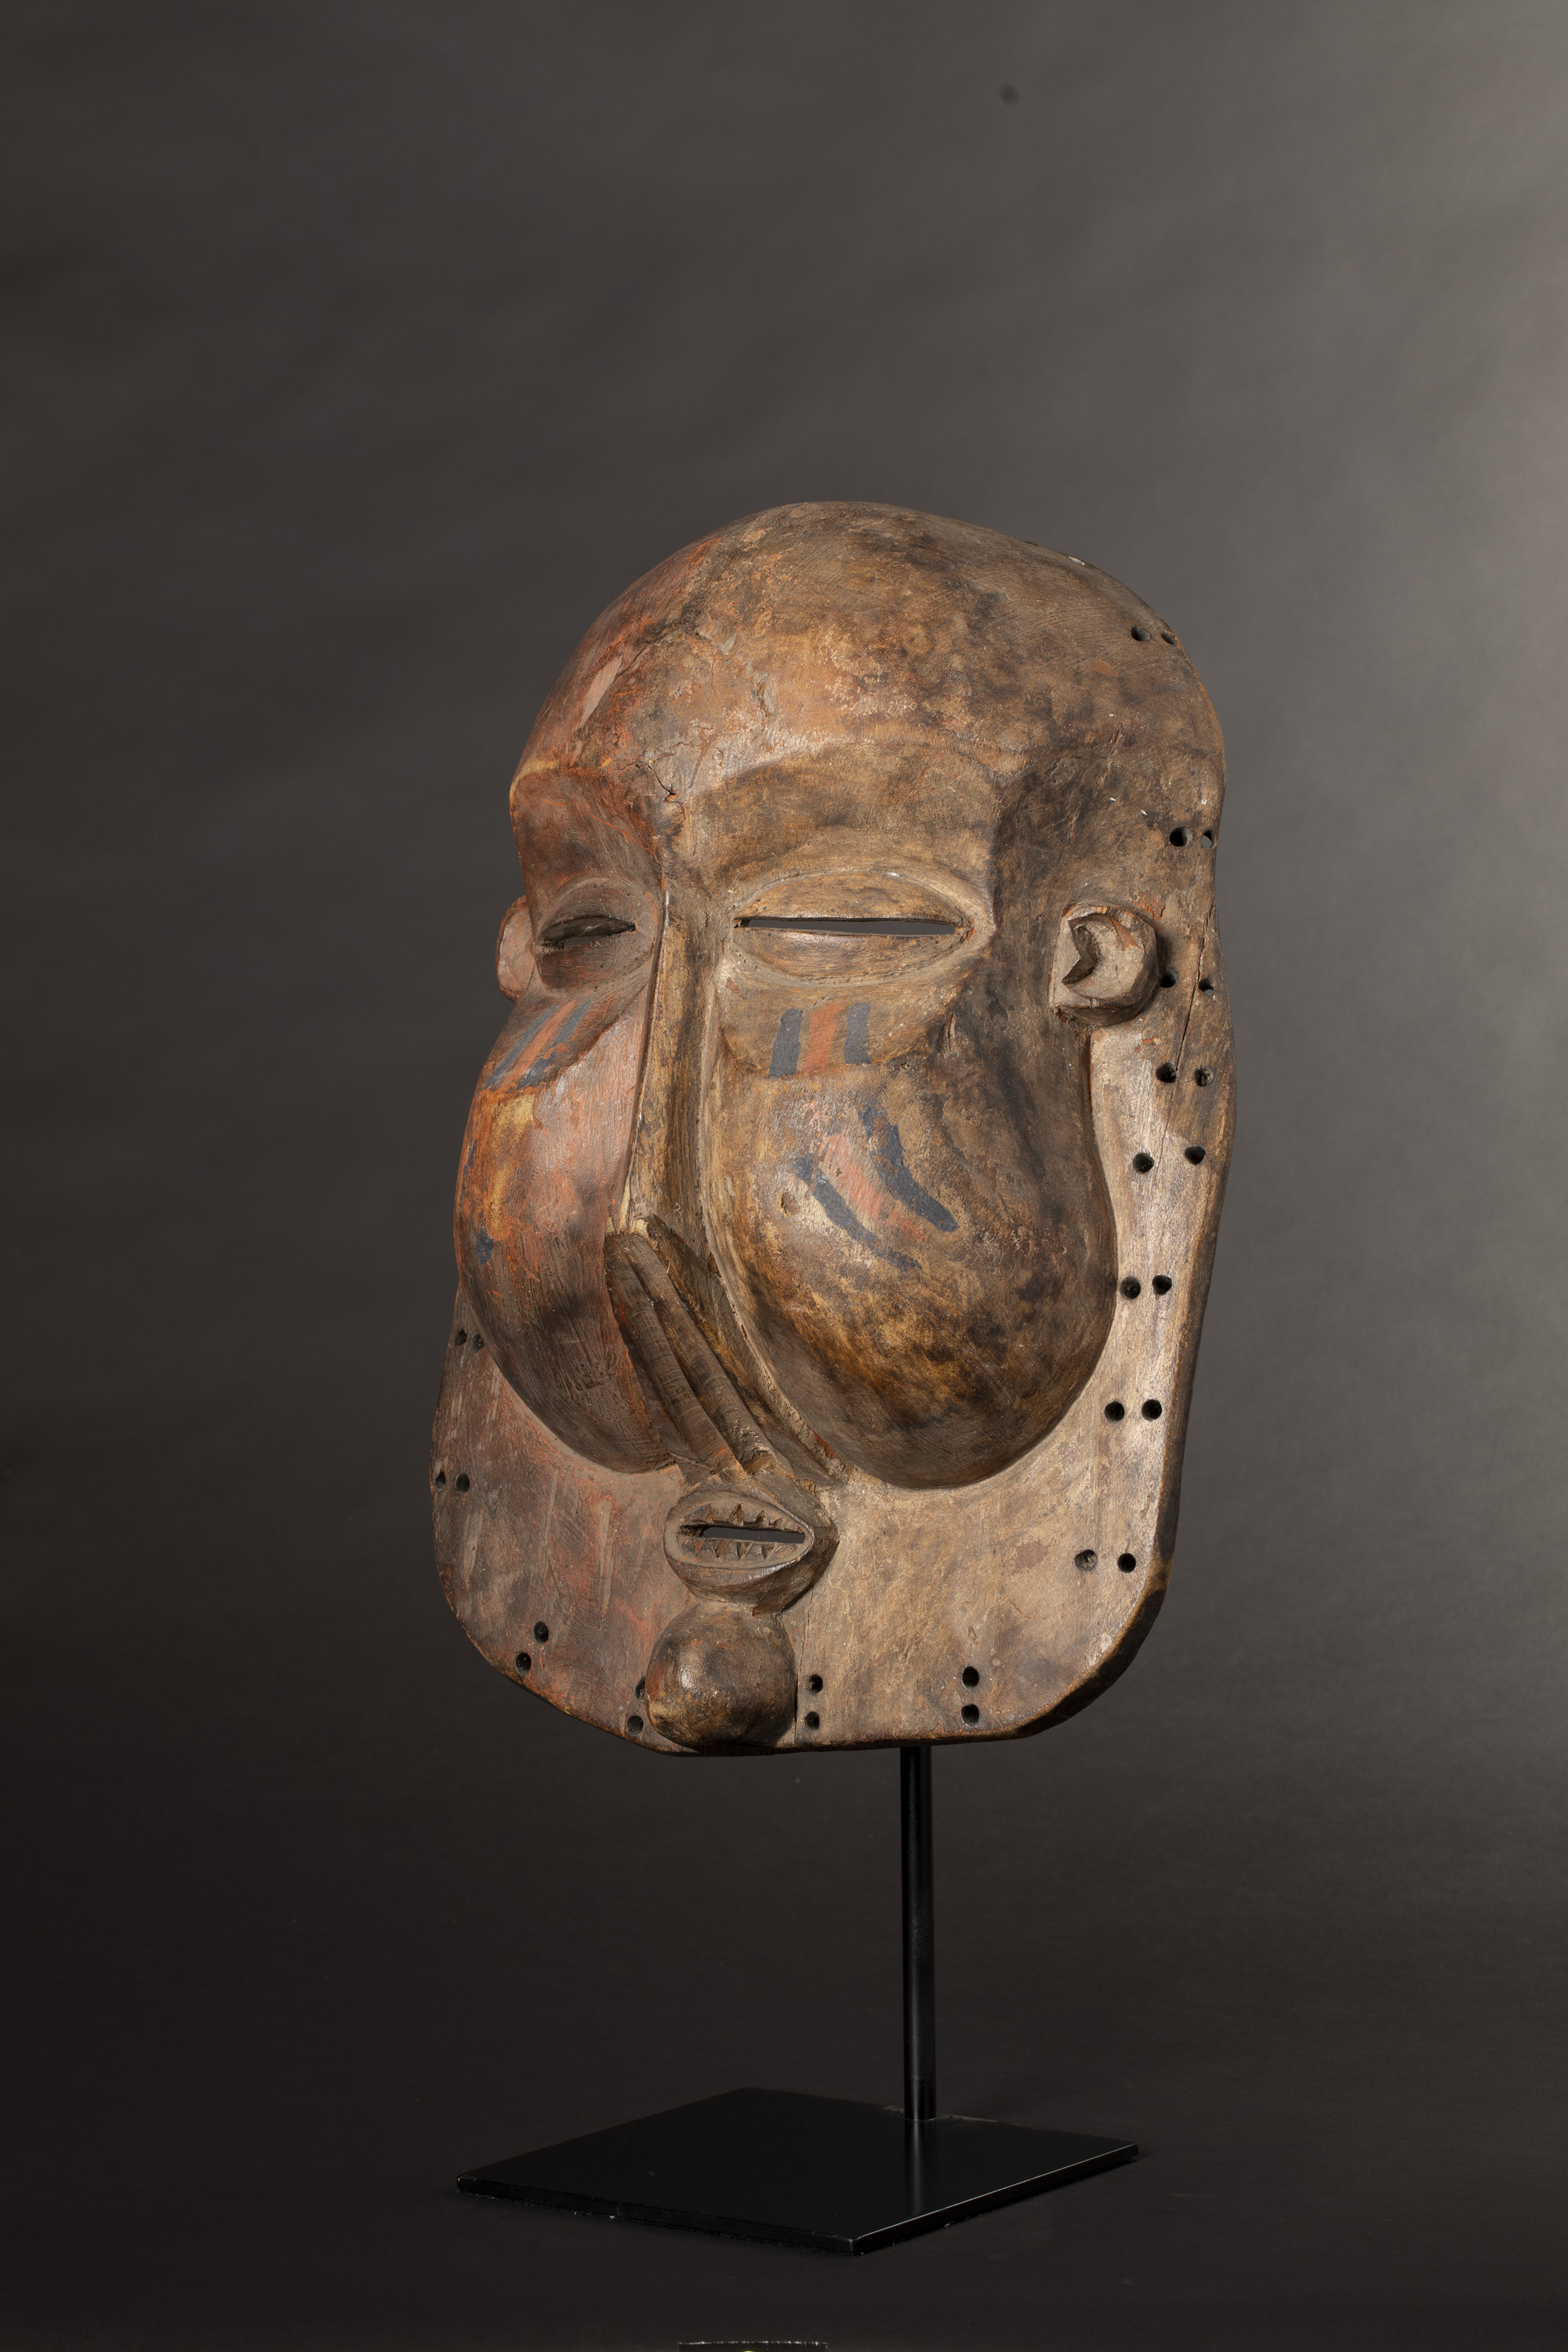 A Yaka Suku People Dance Mask from the Democratic Republic of Congo Africa